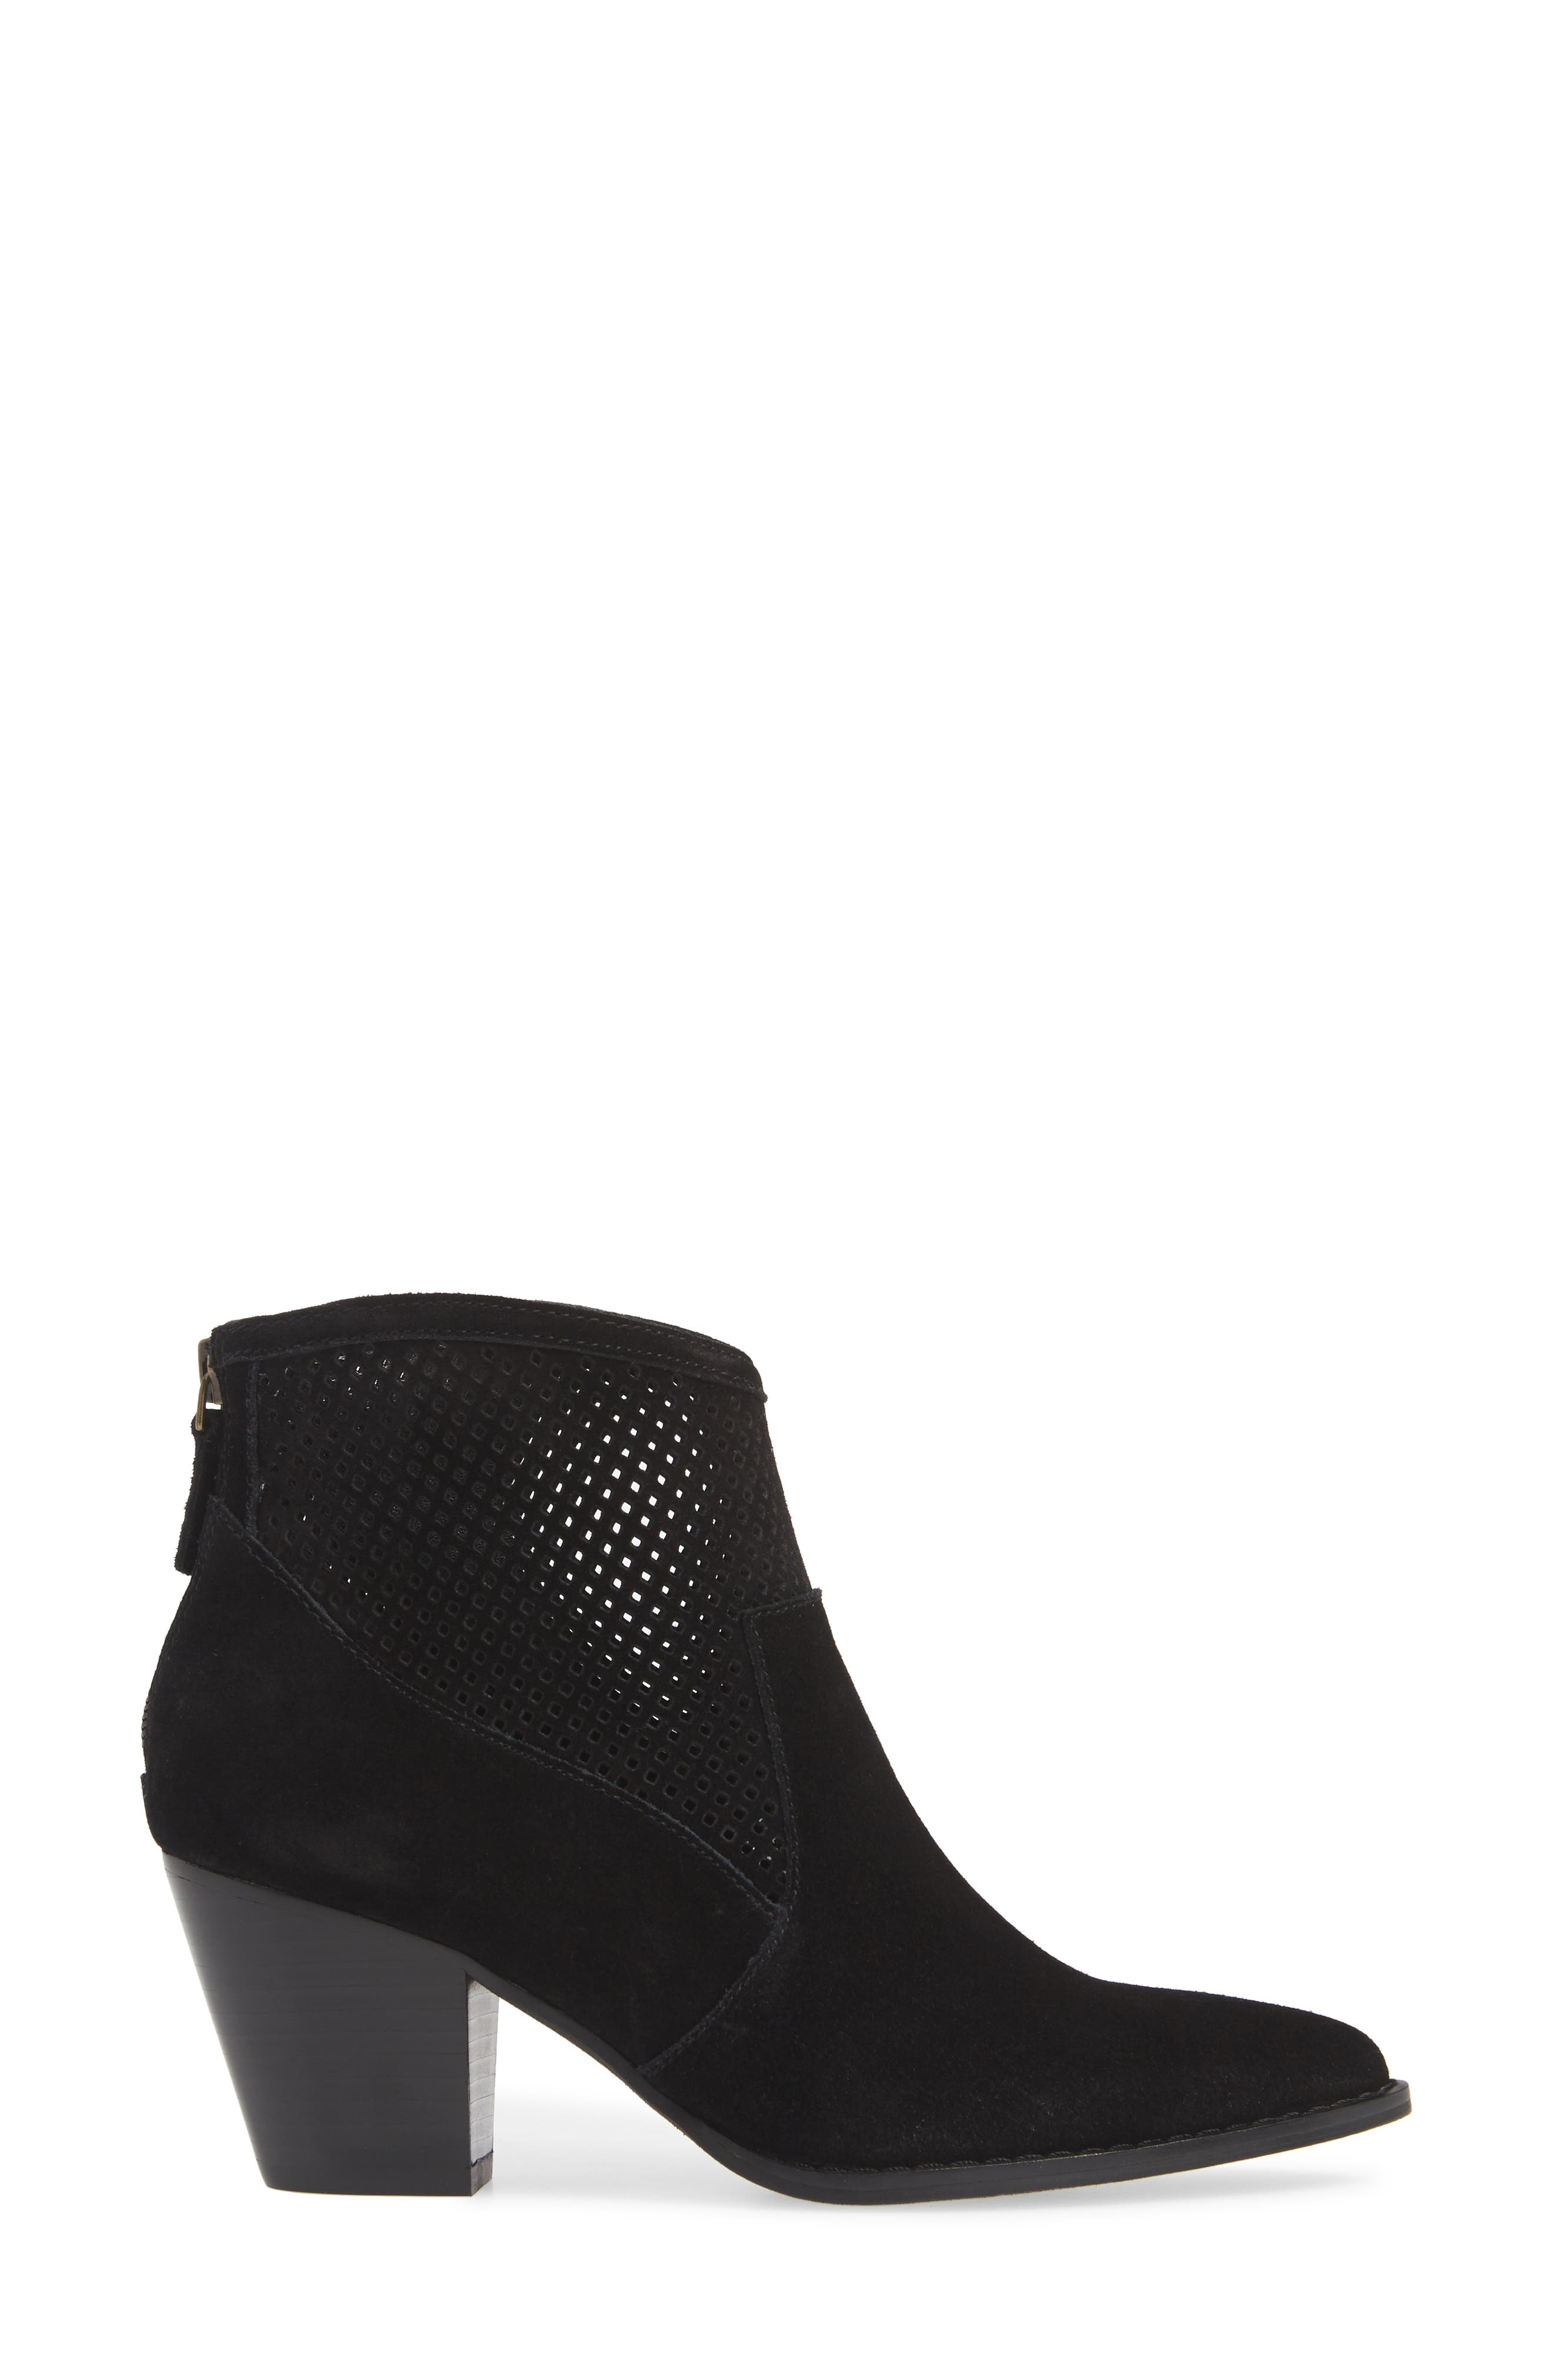 TREASURE & BOND,                             Boone Perforated Western Bootie,                             Alternate thumbnail 3, color,                             BLACK SUEDE